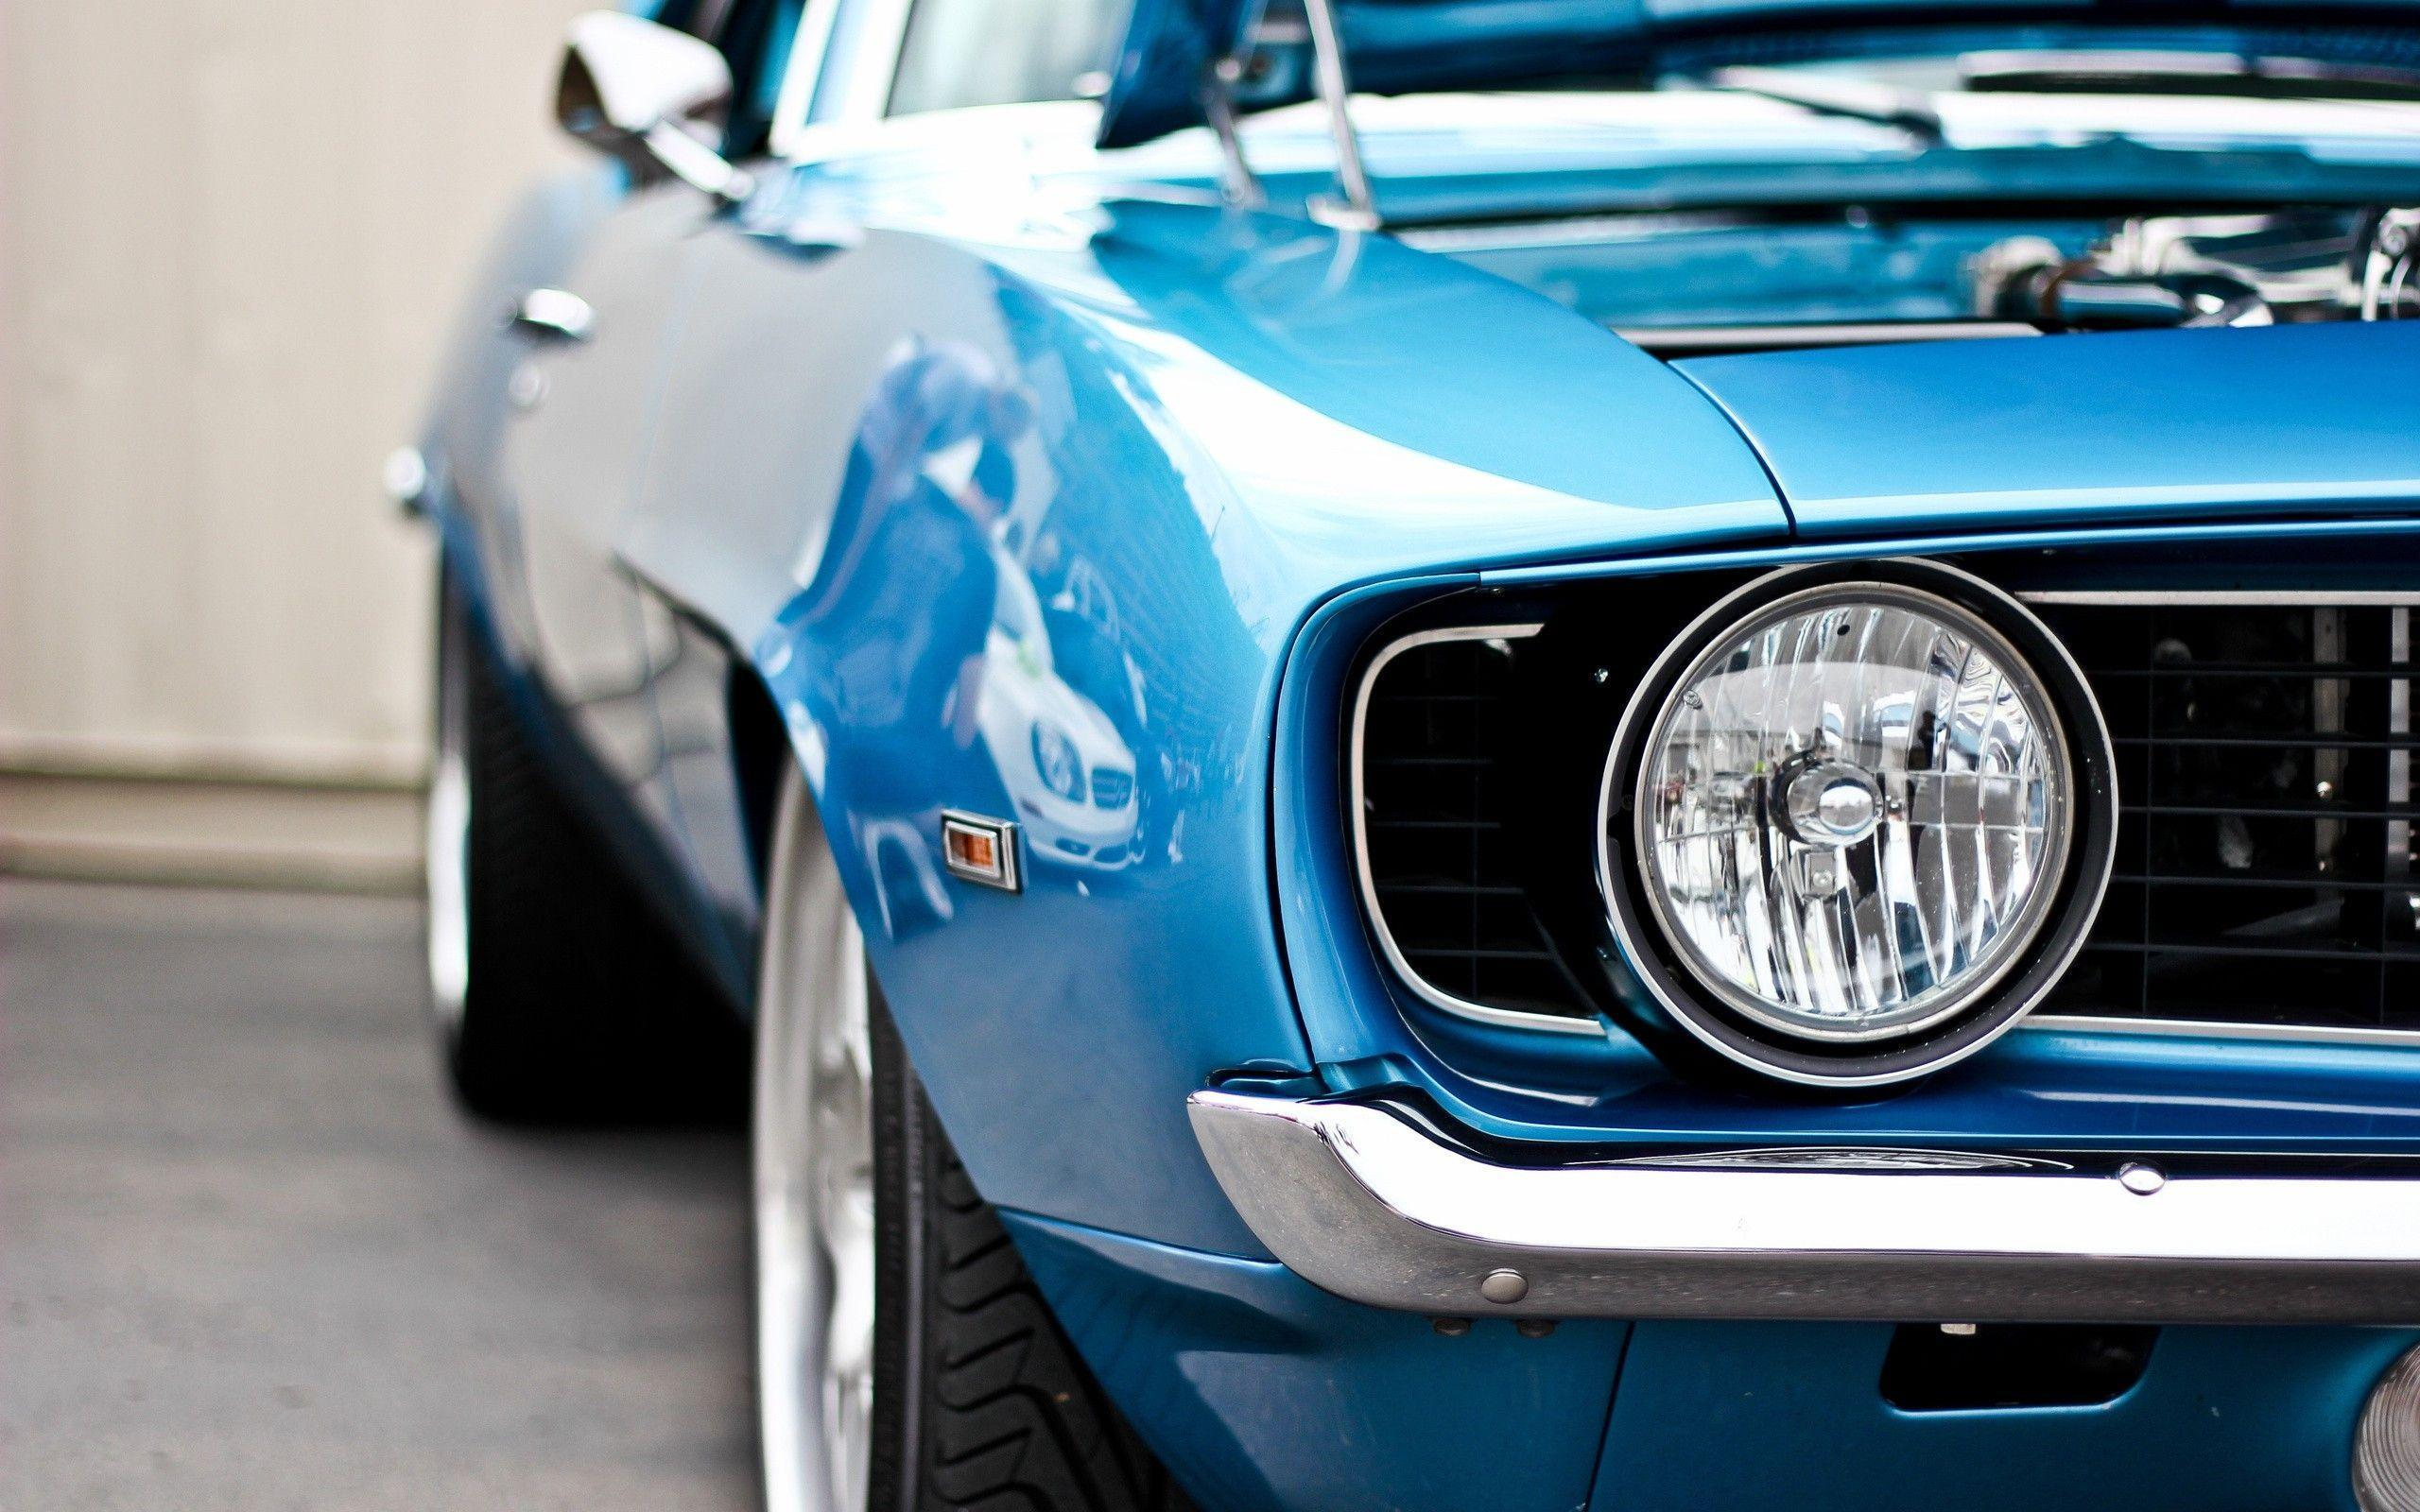 Hd muscle car wallpapers 1920x1080